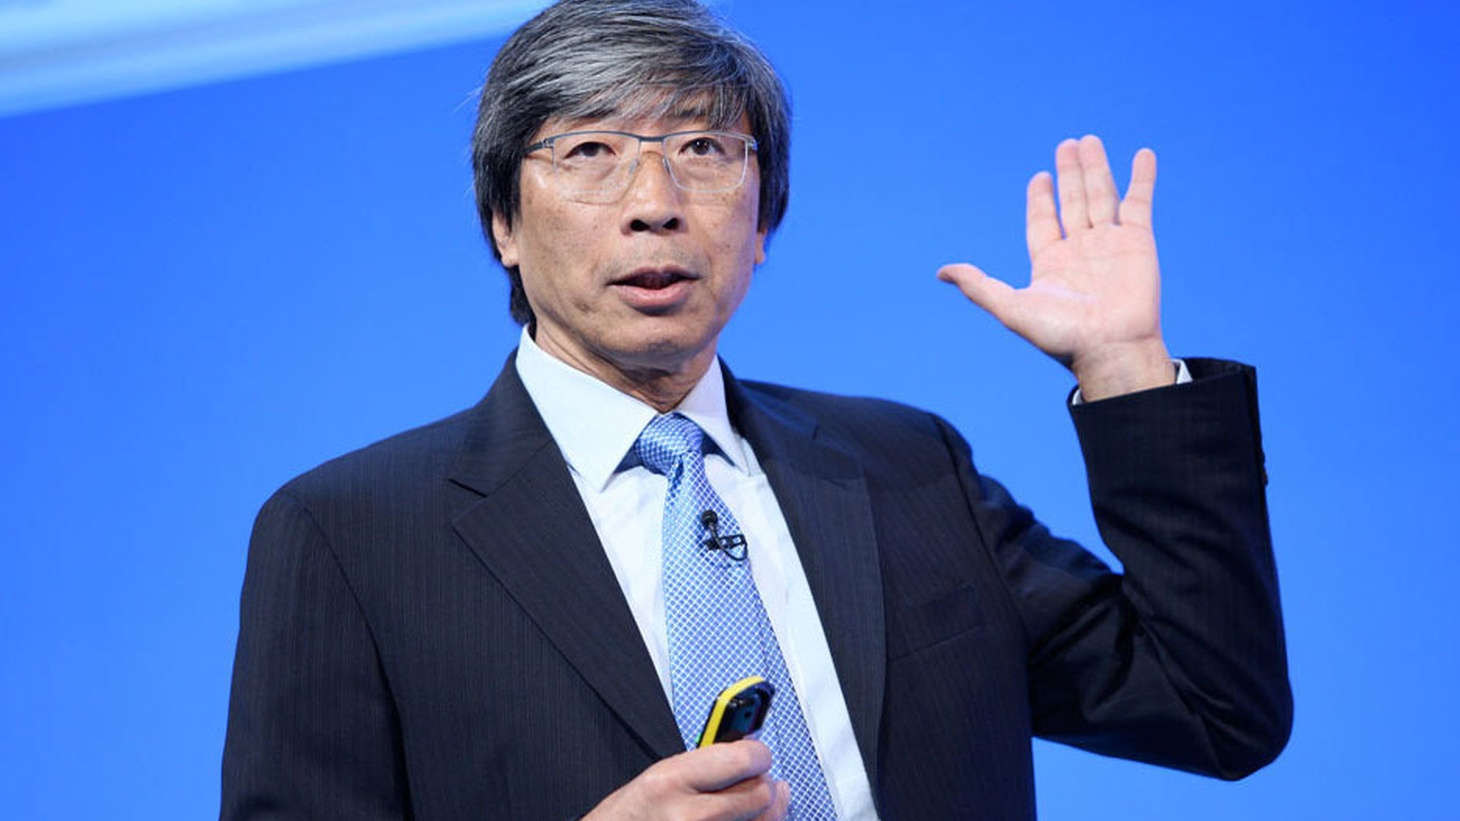 The richest man in Los Angeles is buying the LA Times for $500 million.